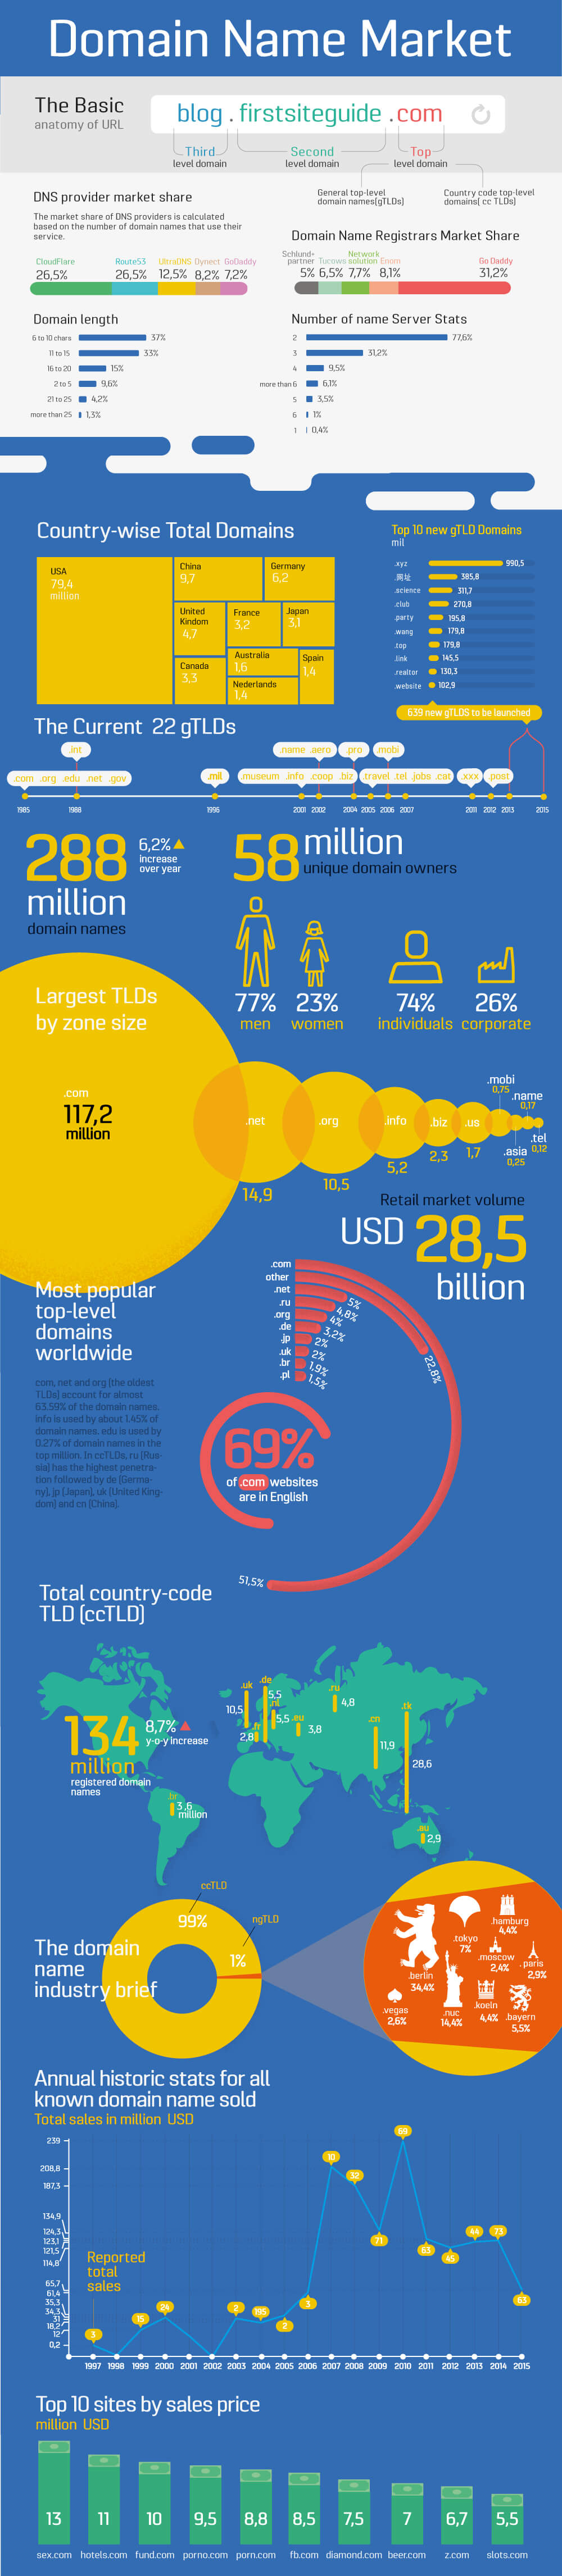 domain-name-market-infographic